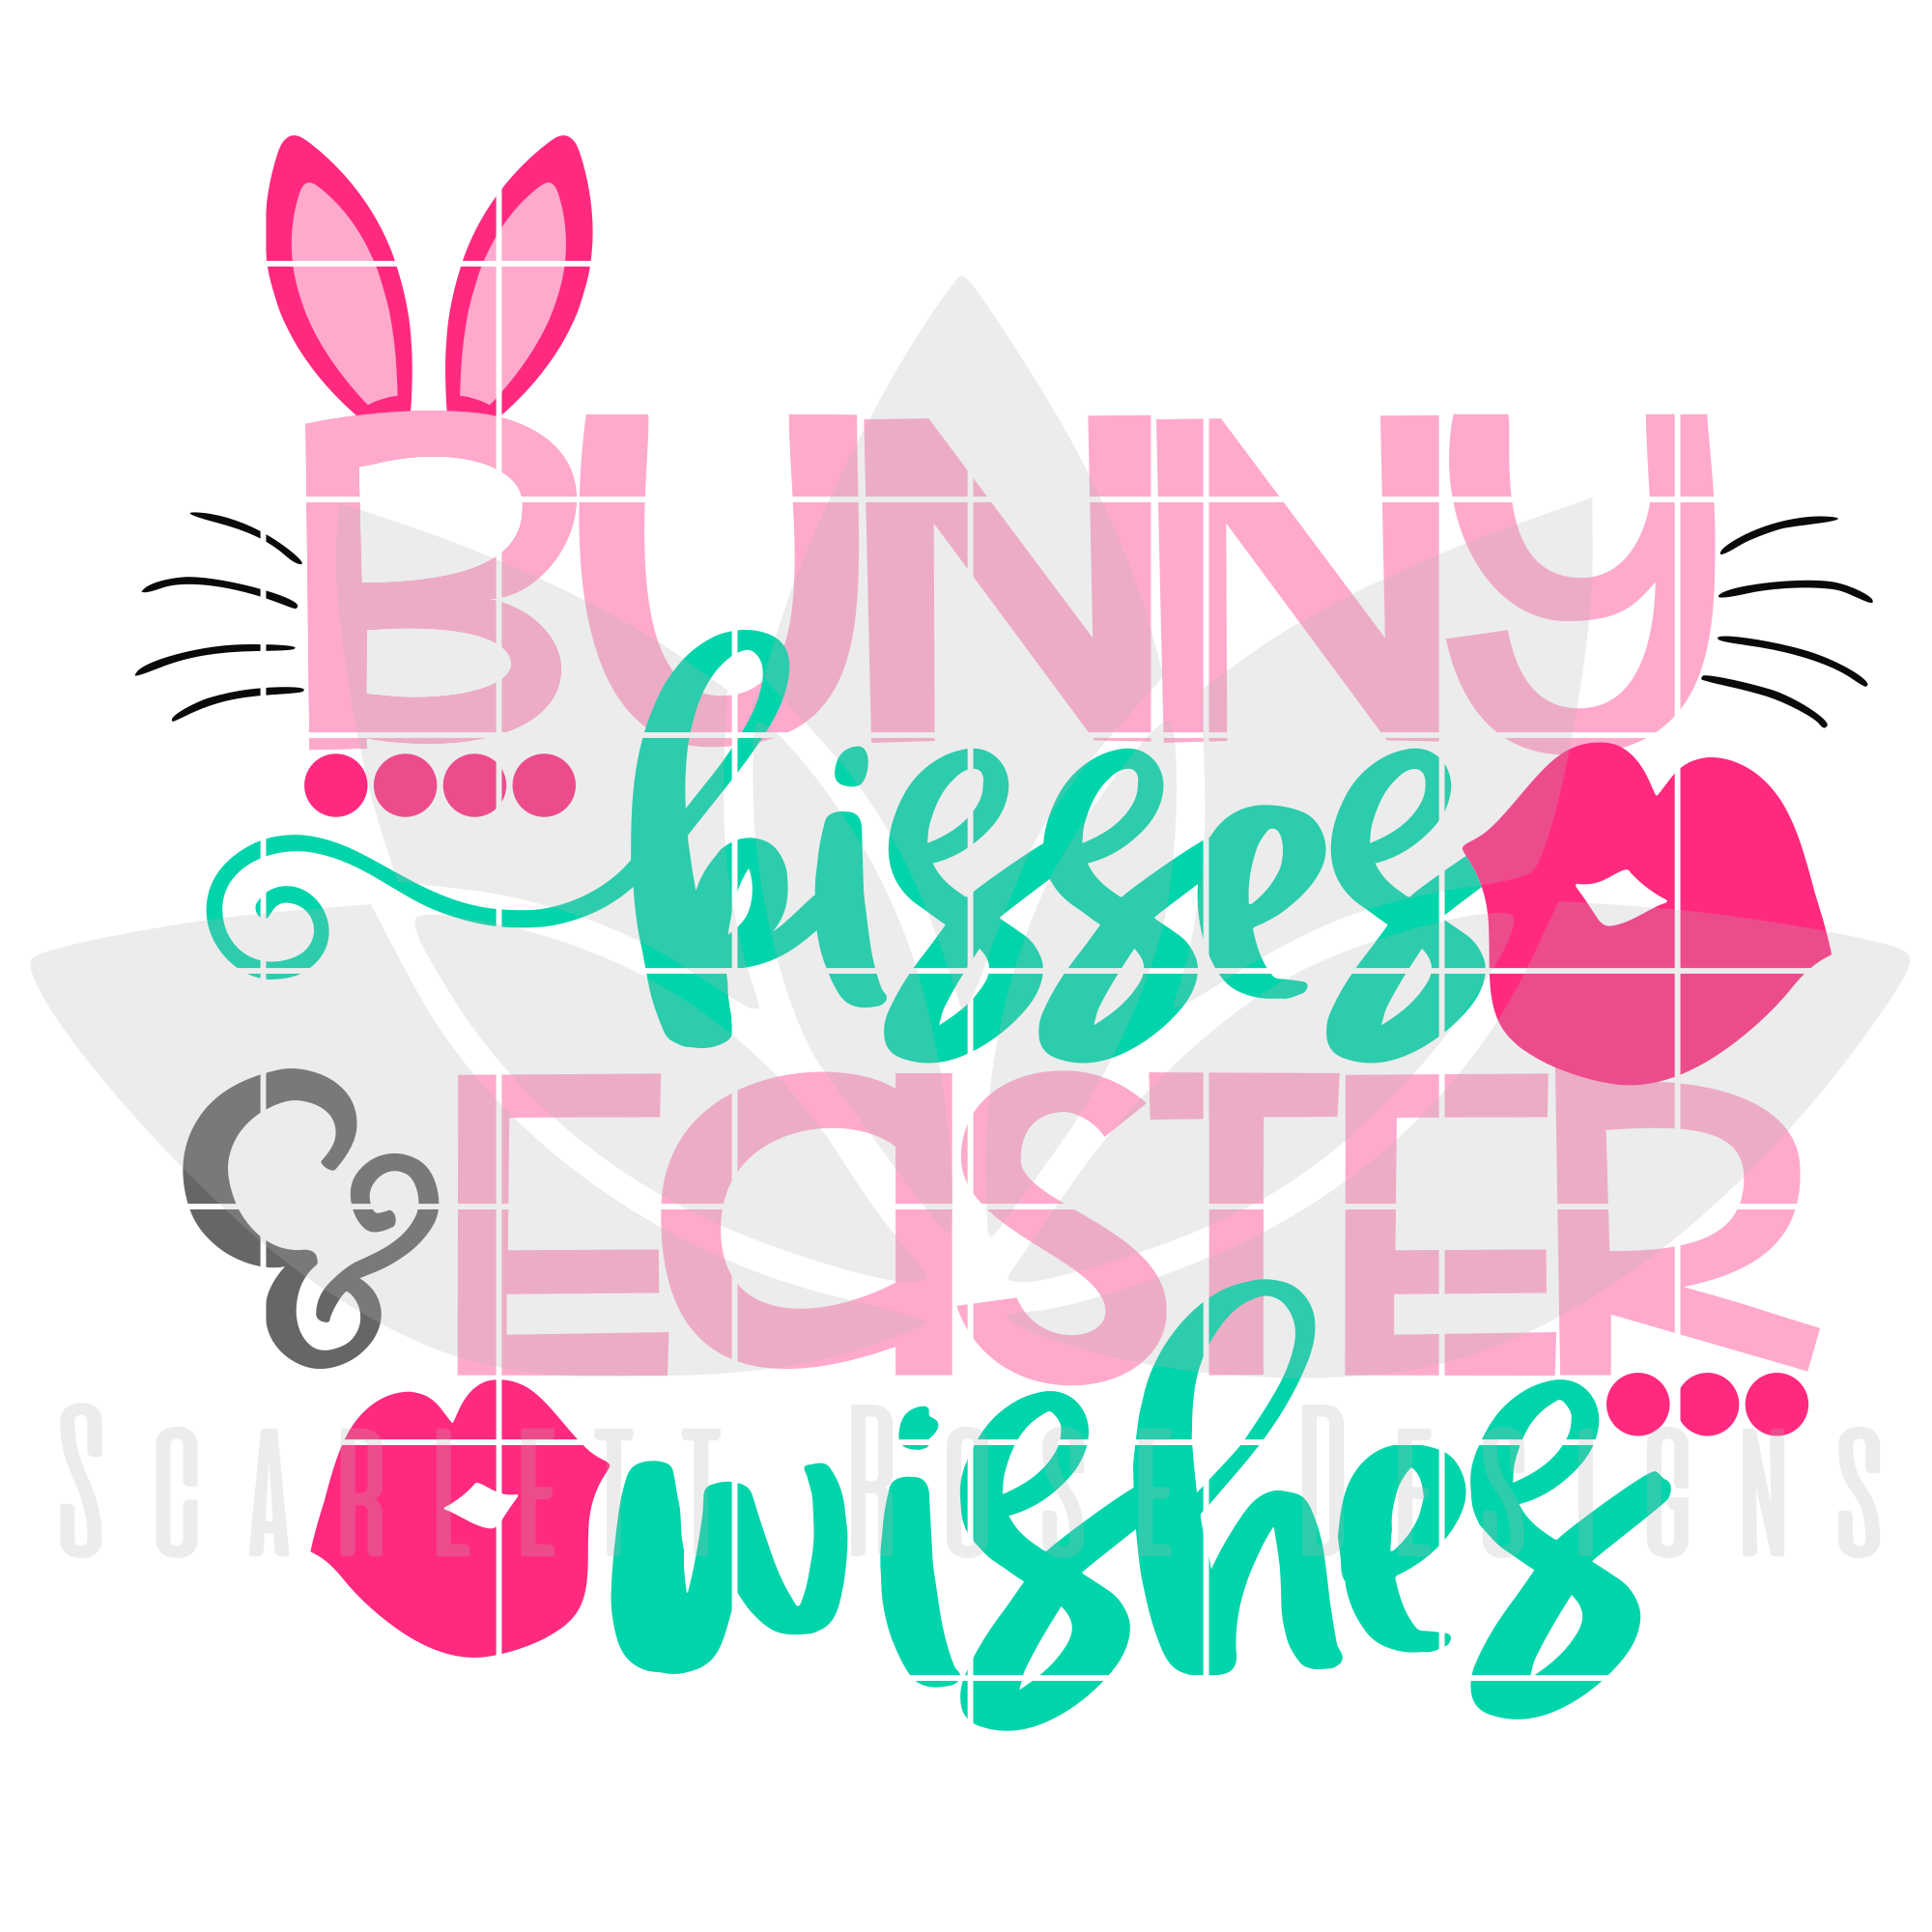 Easter Svg Bunny Kisses And Easter Wishes Cut File Scarlett Rose Designs